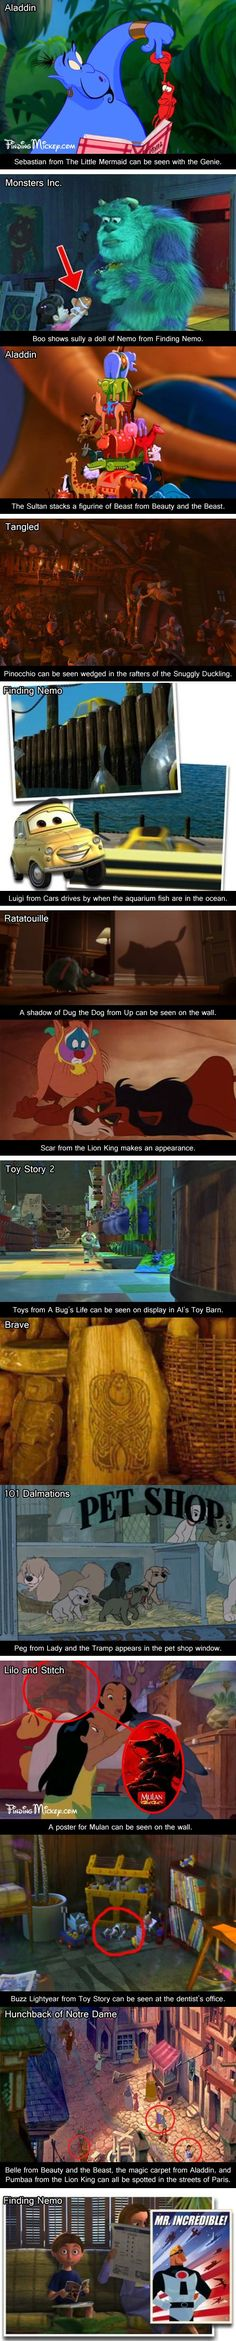 Characters showing up in other Disney movies. 25 Signs You Grew Up With Disney | Things for Geeks       tjn